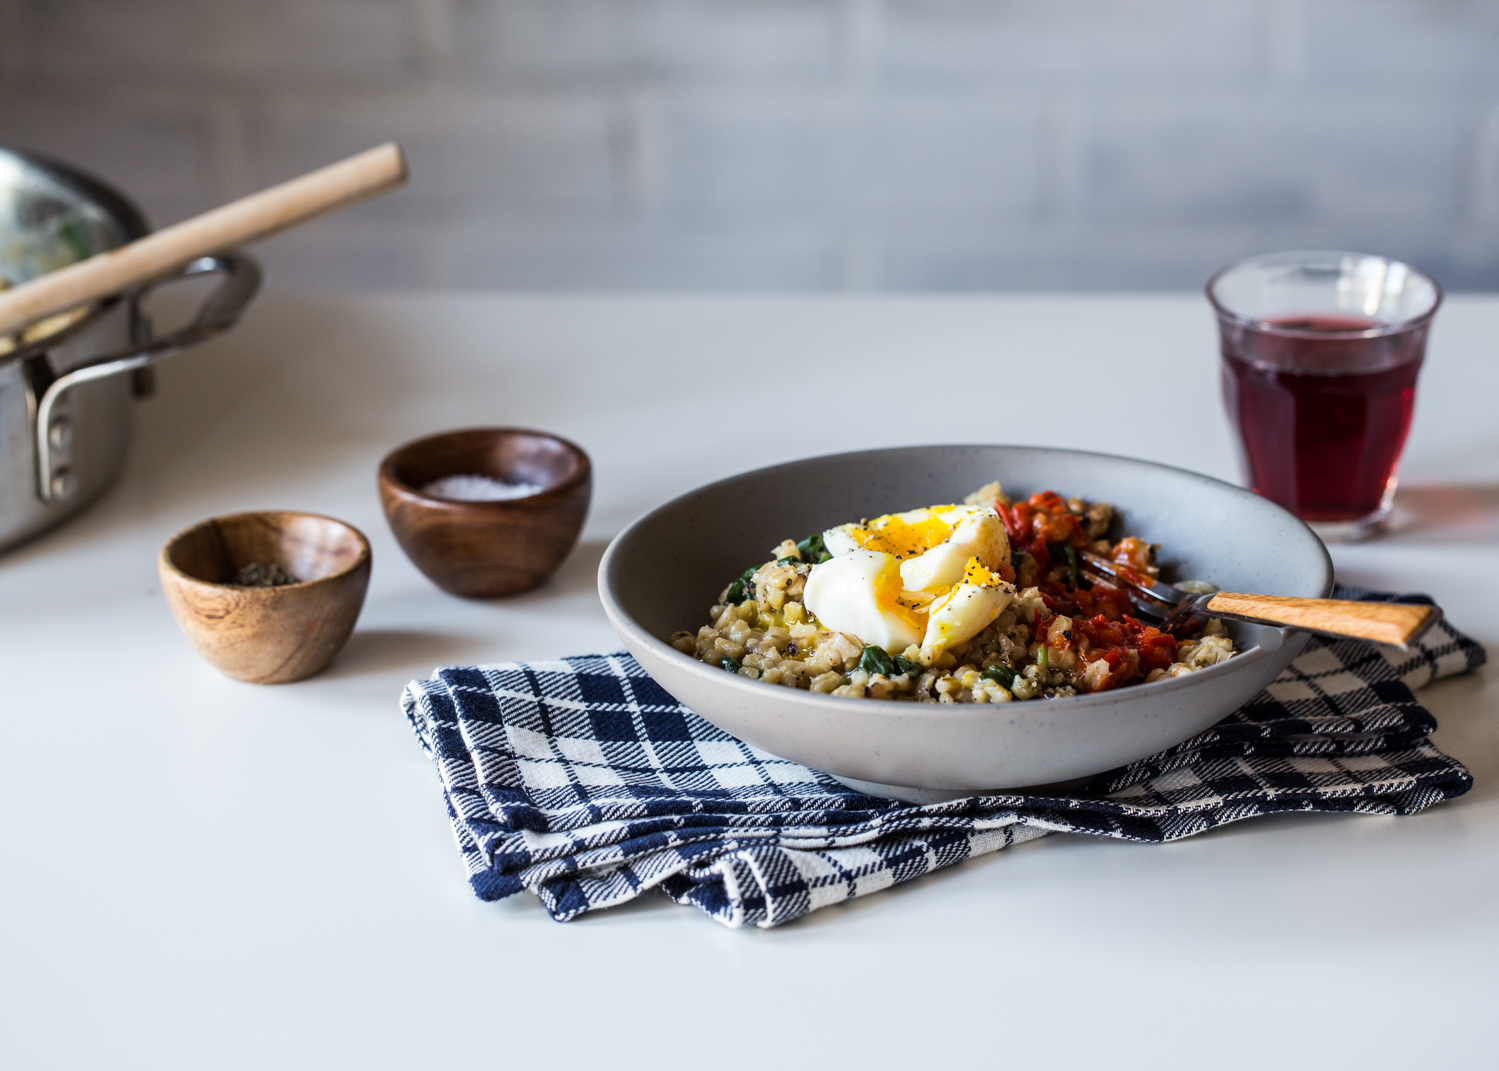 Barley Spinach Risotto is a great side dish or hearty enough for a complete meal